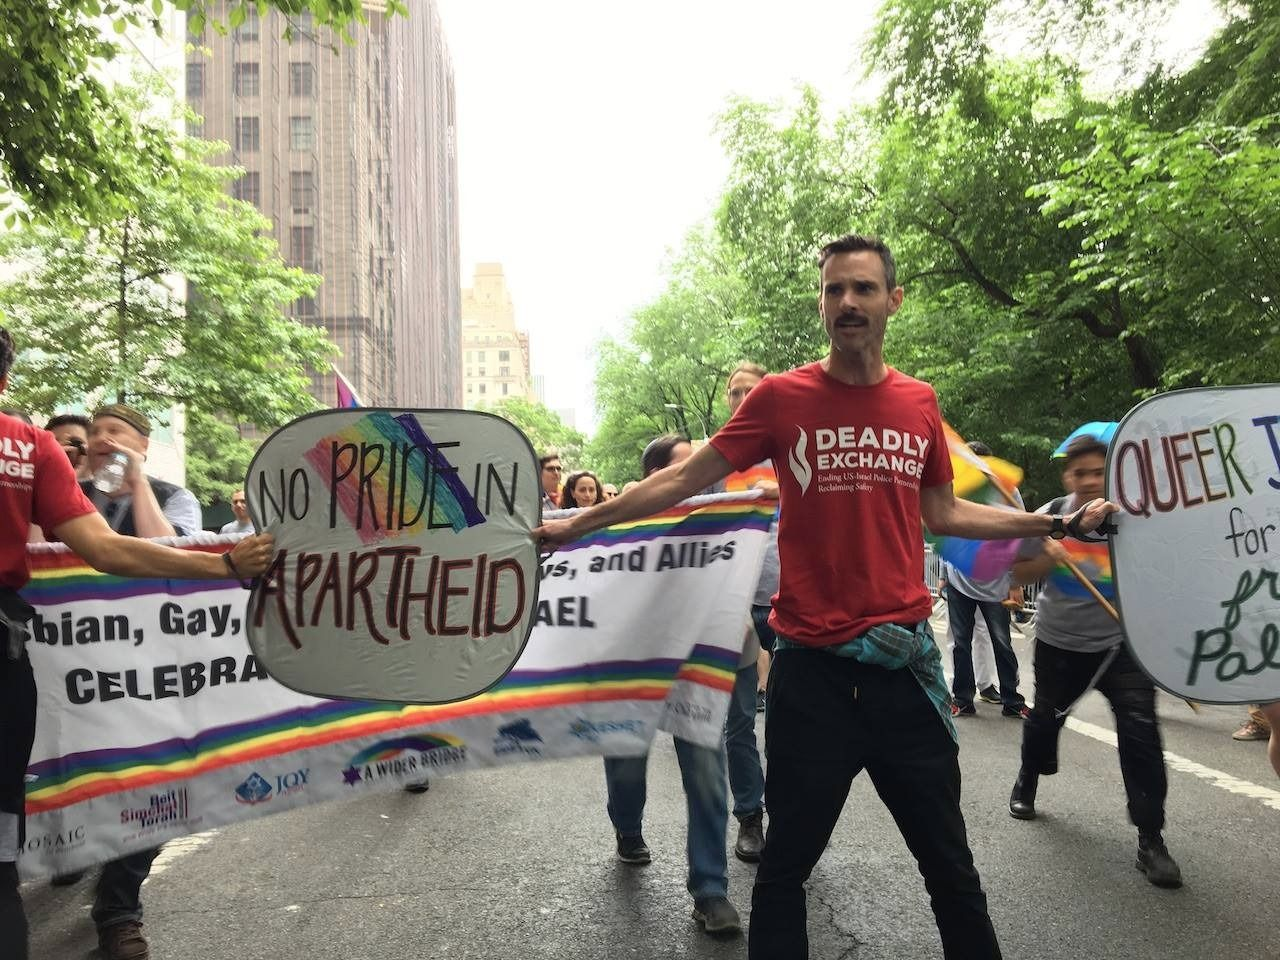 Craig Willse, a member of JVP, participating in the group's disruption of the Celebrate Israel Parade on June 4th.